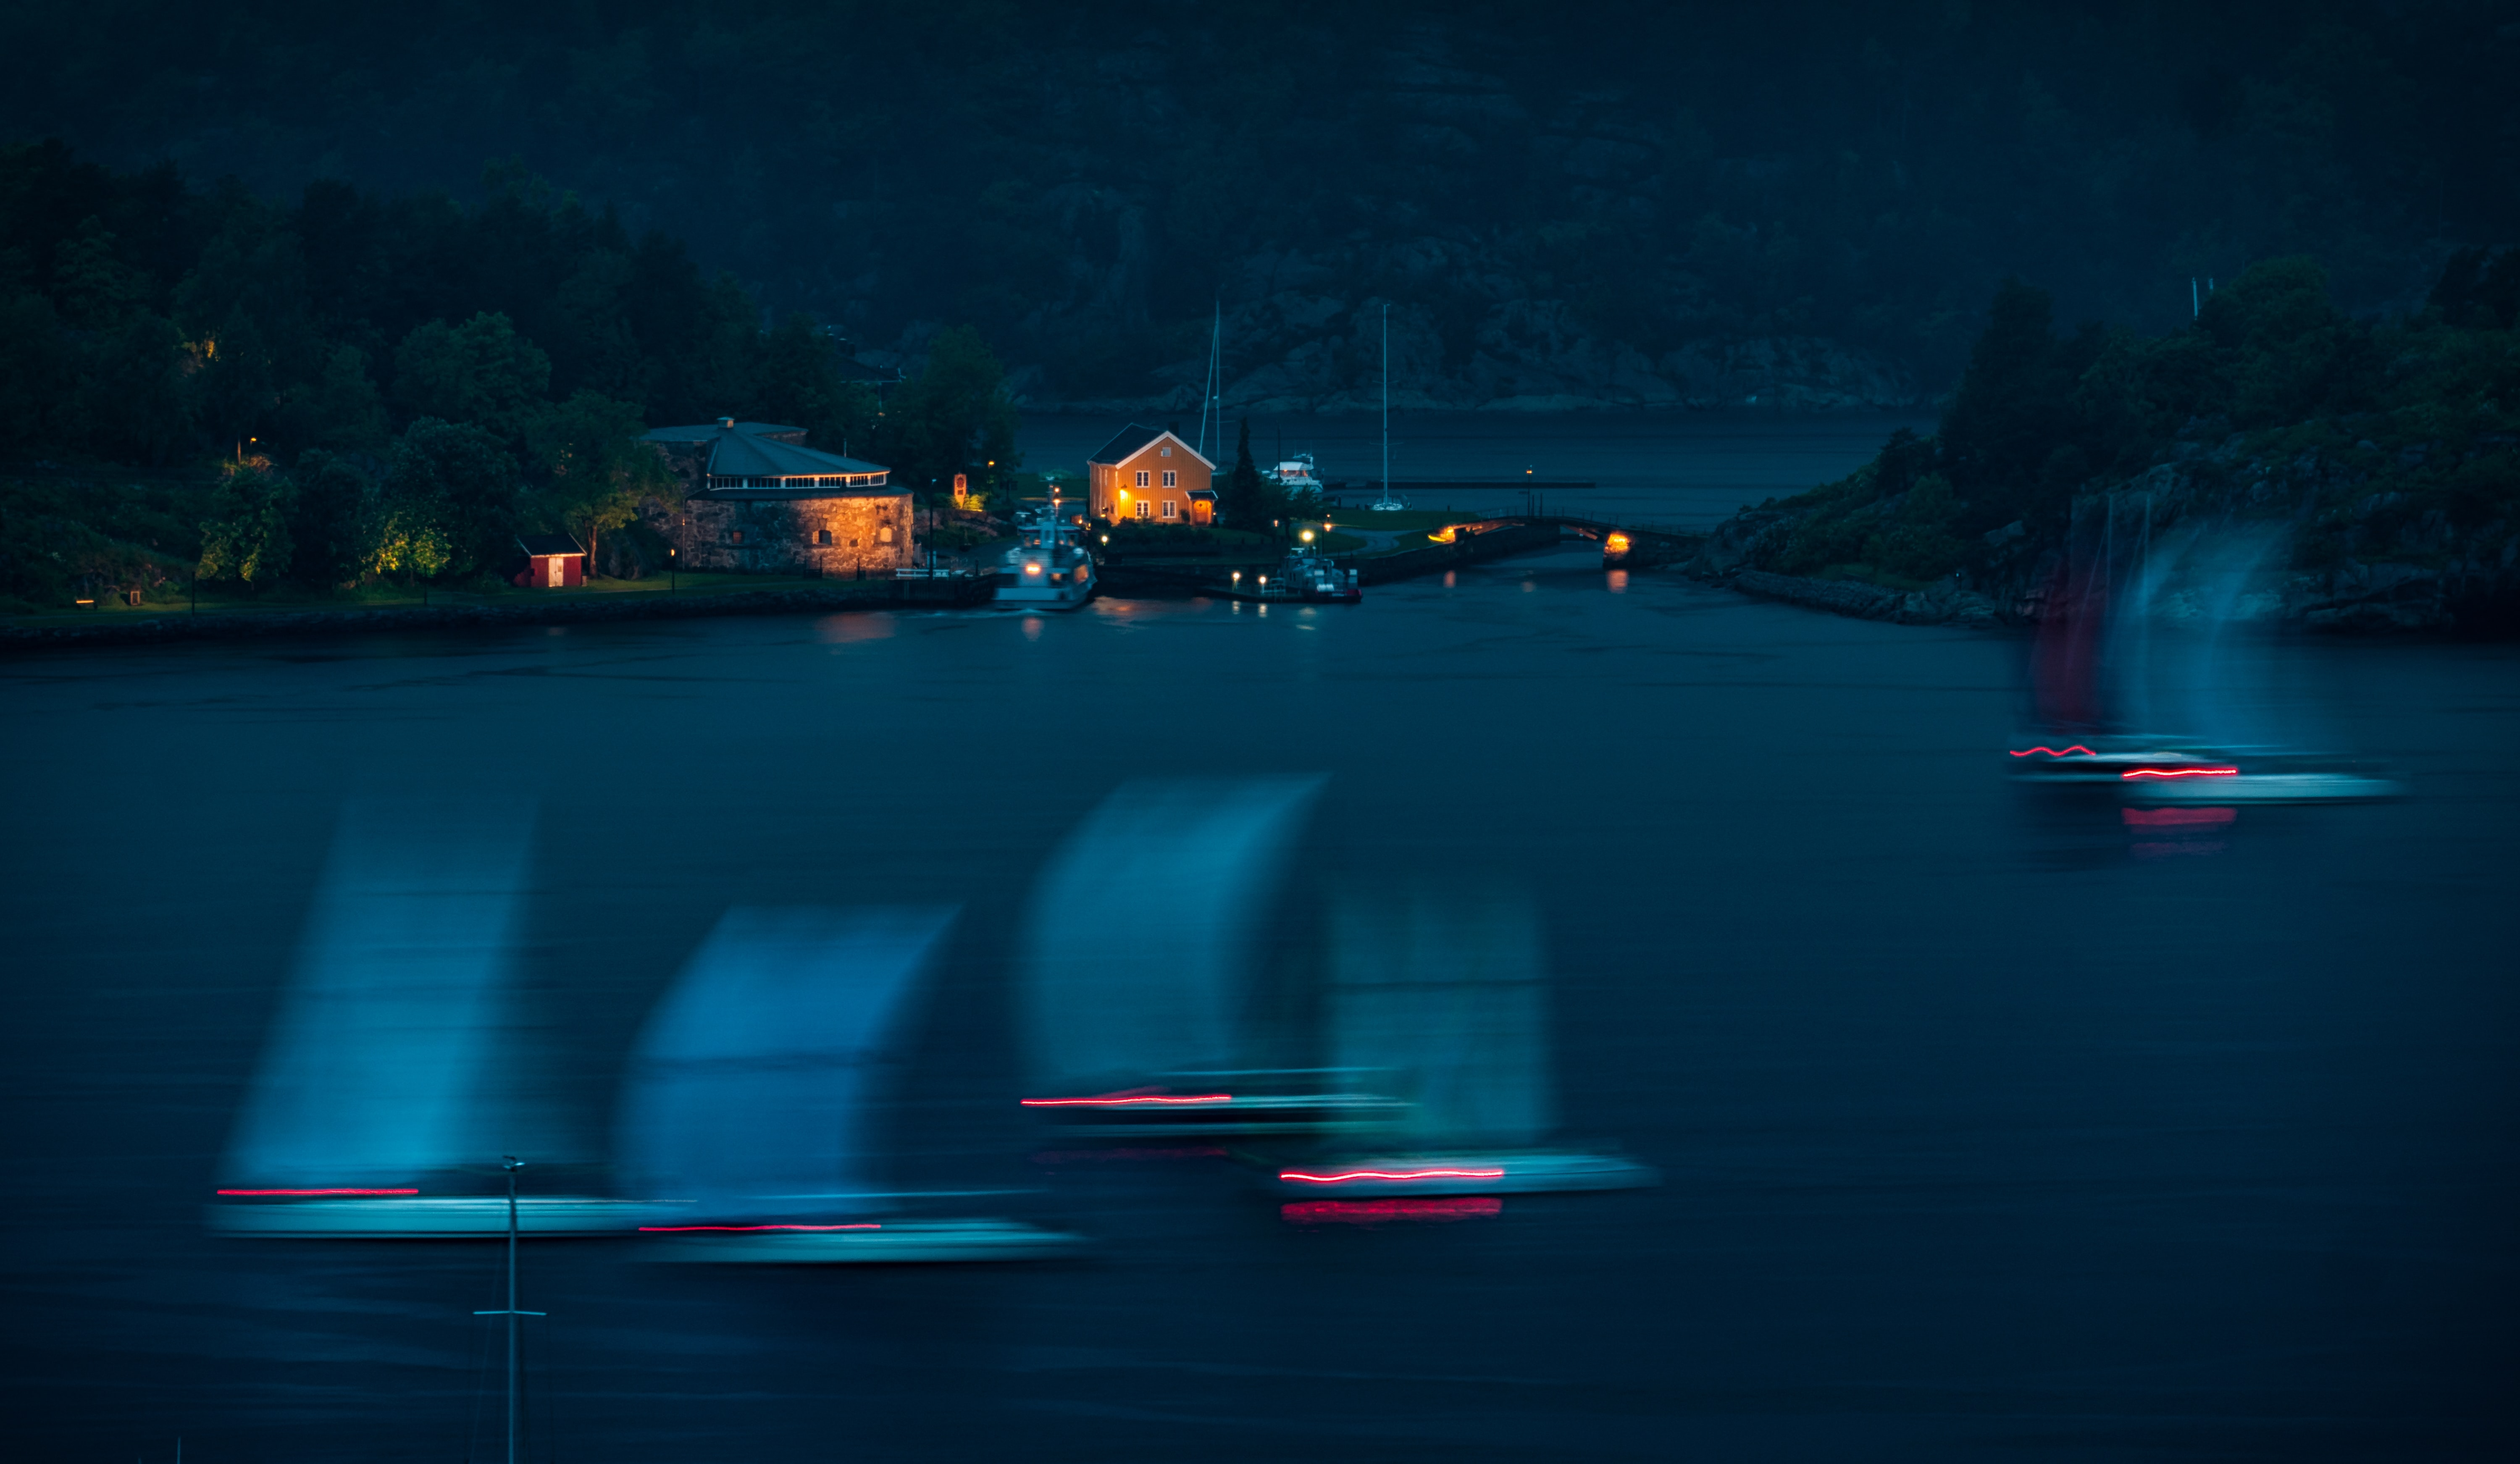 boats on body of water near lighted house